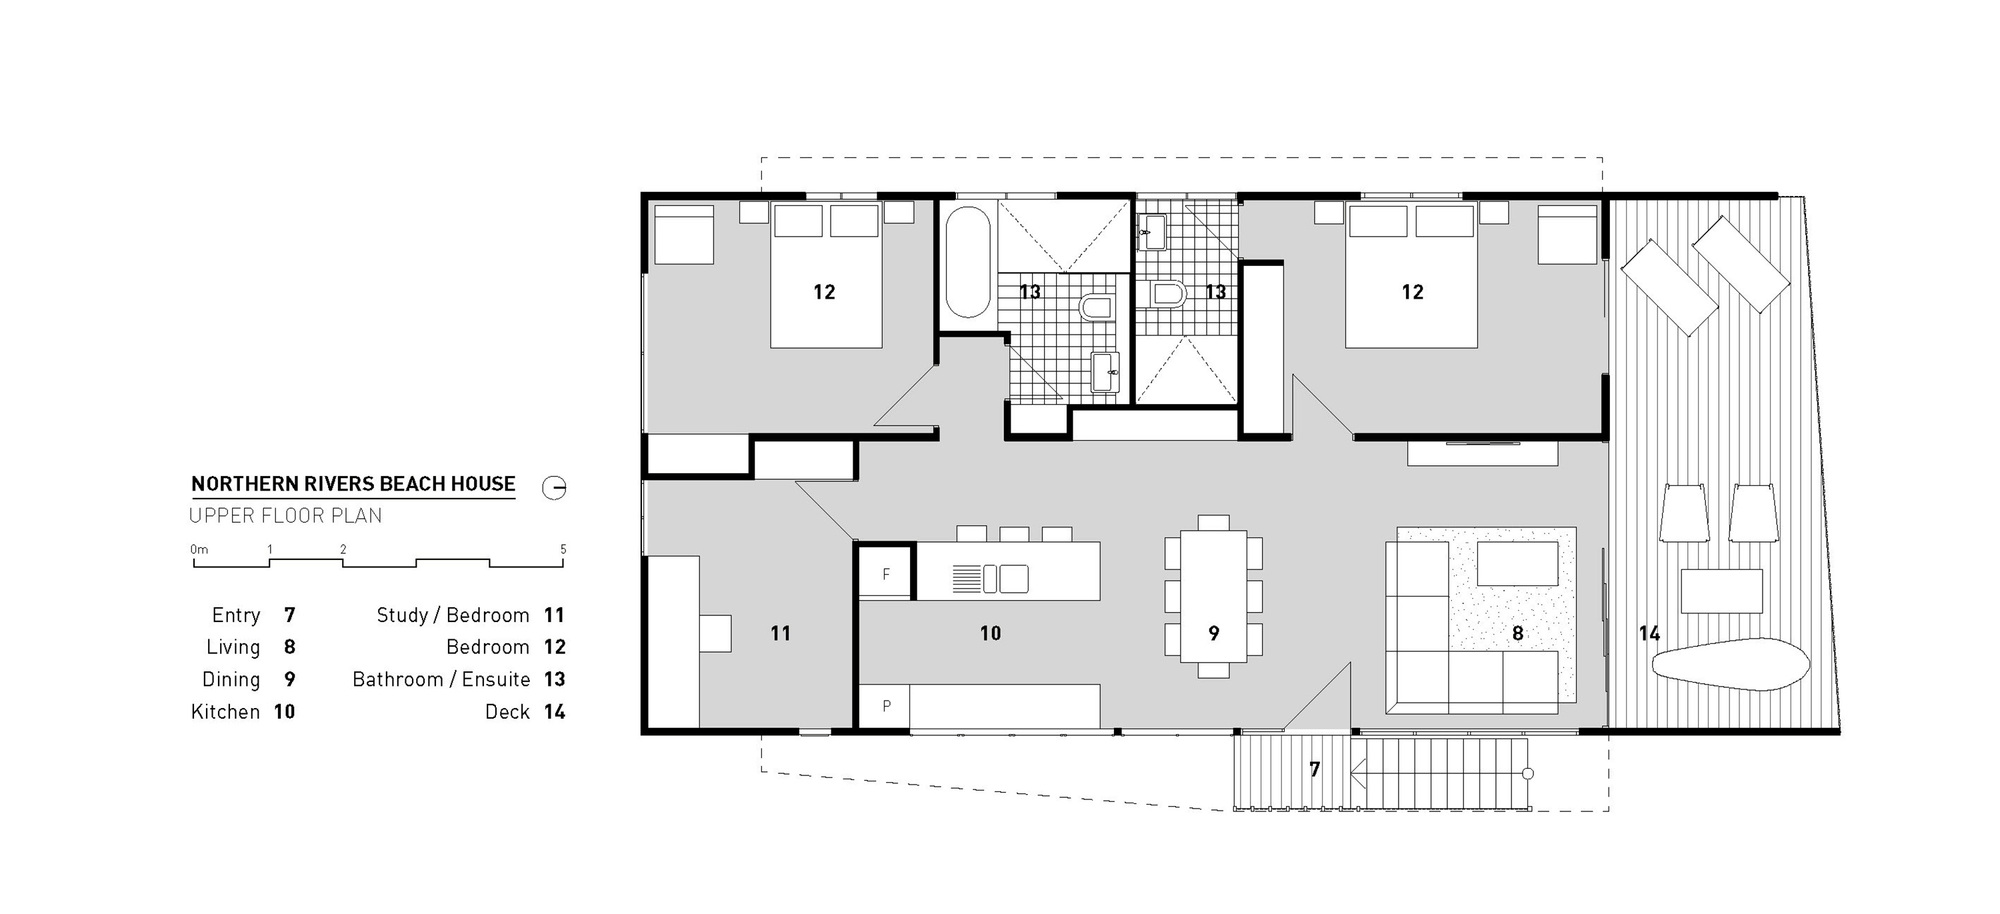 design of house plan ideas 4 beach house floor plan. beach house